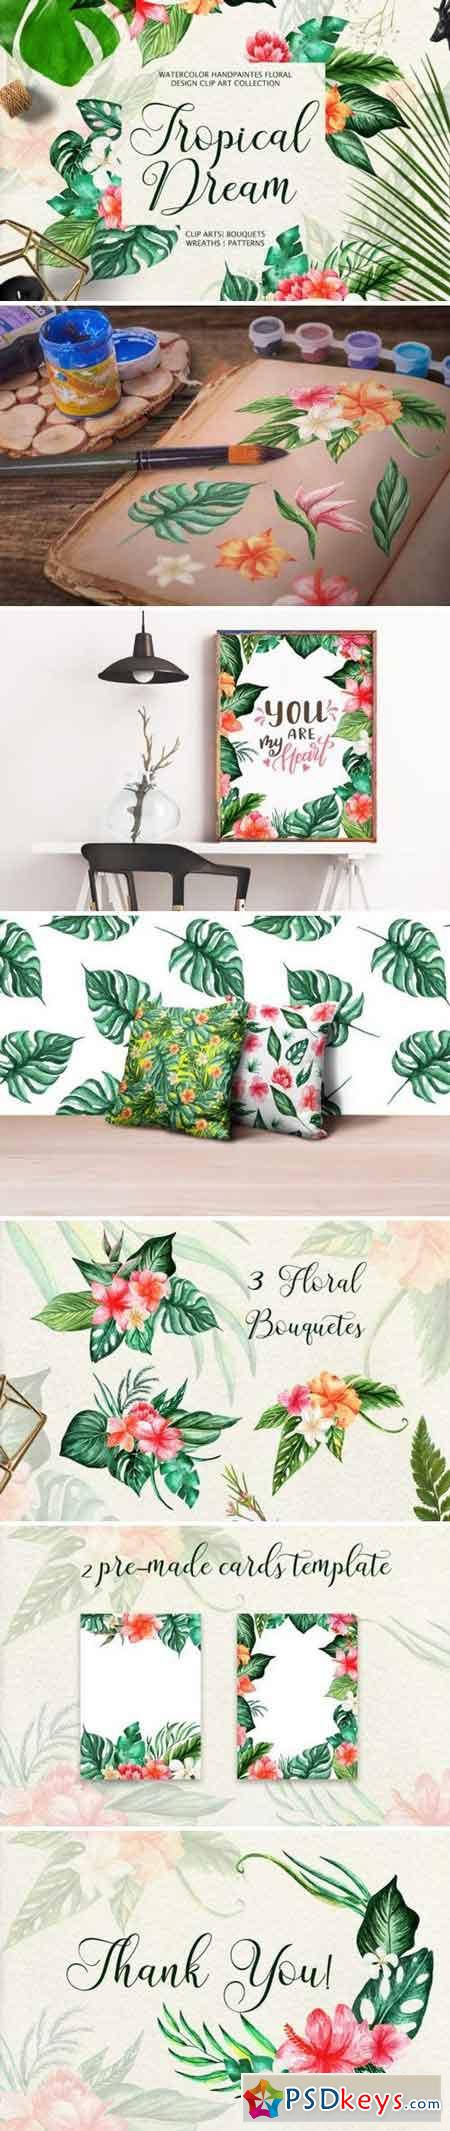 Tropical Dream-watercolor set 3370361